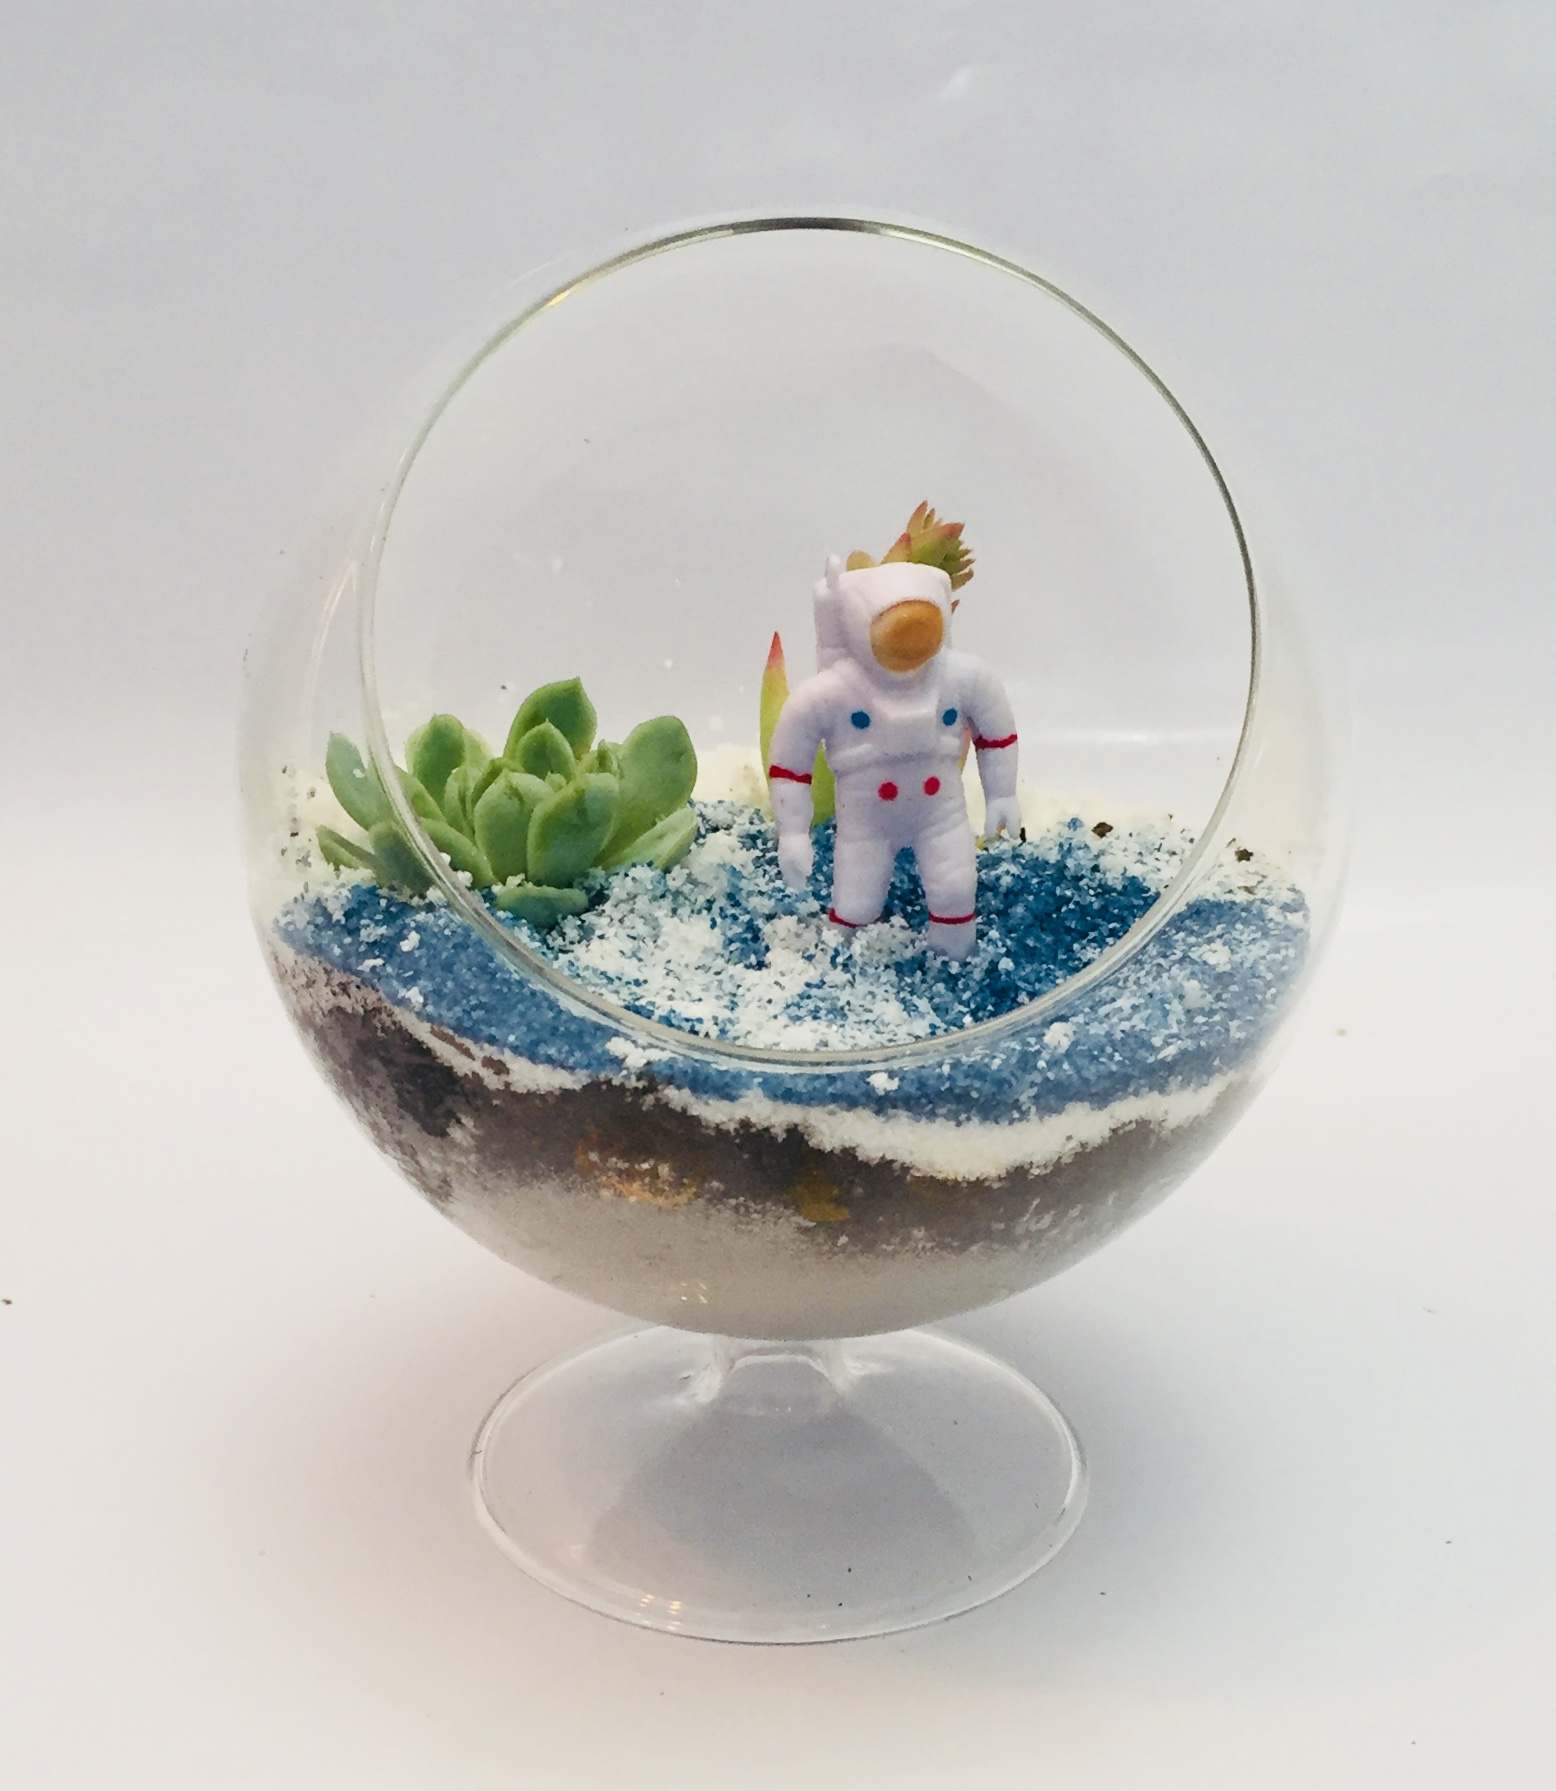 Garden - Make your own terrarium- prices marked on each container along with number of succulents included. All terrariums come with 1 miniature. Prices $15 - $75Extra succulents - $4Extra miniatures - $4